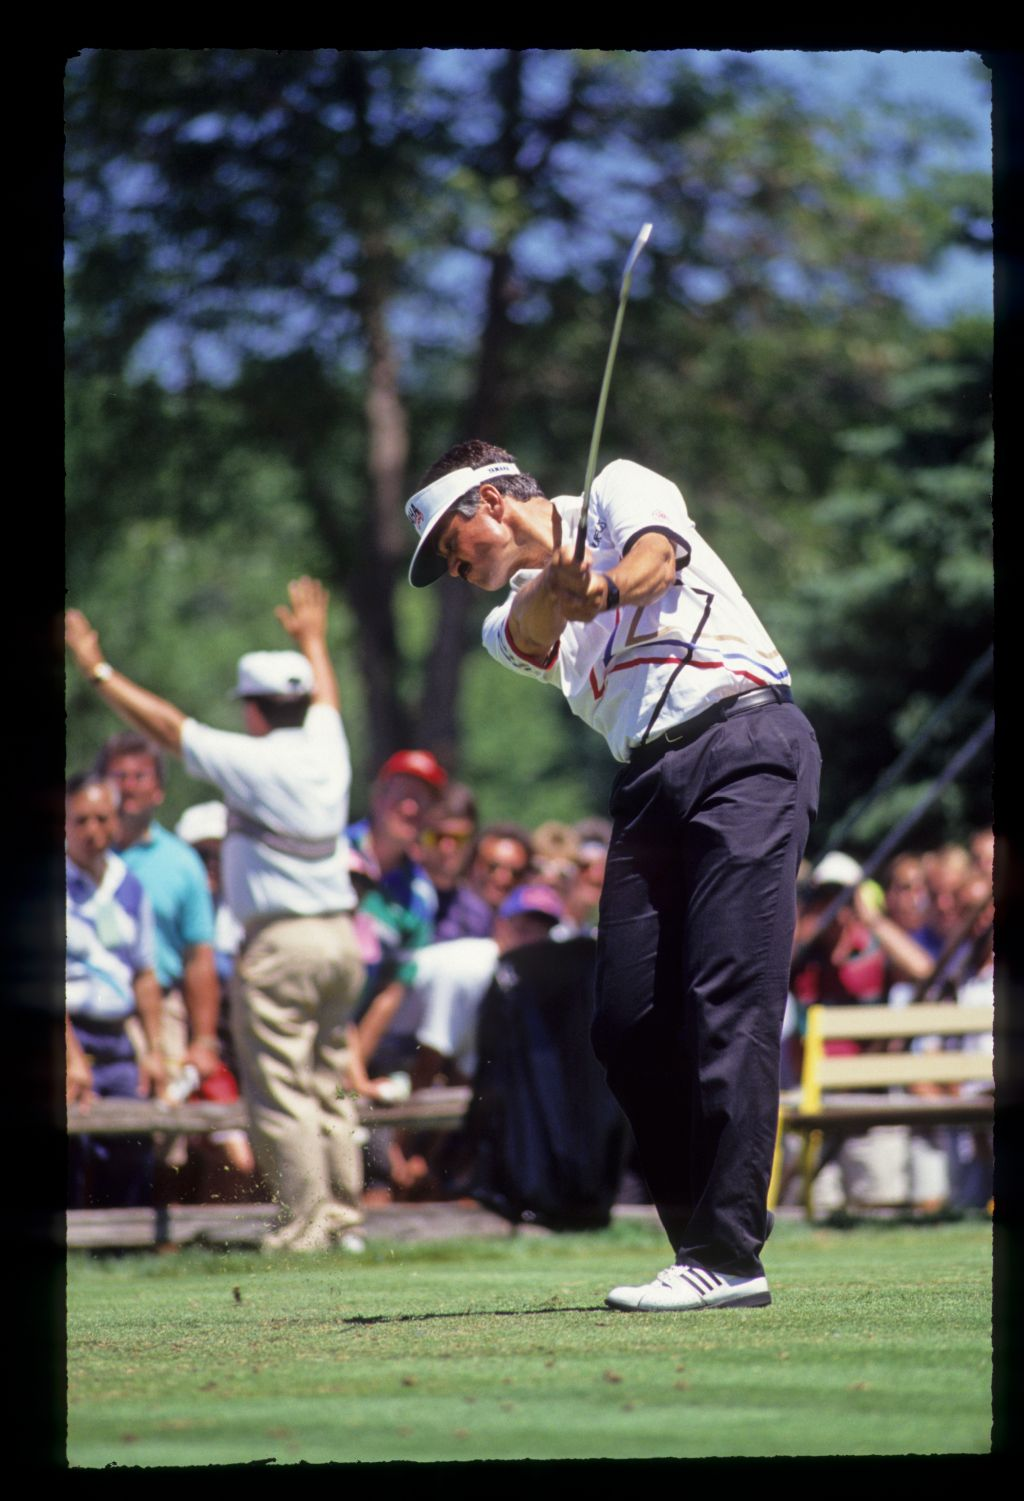 Scott Simpson staying down through the ball on the tee during the 1991 US Open